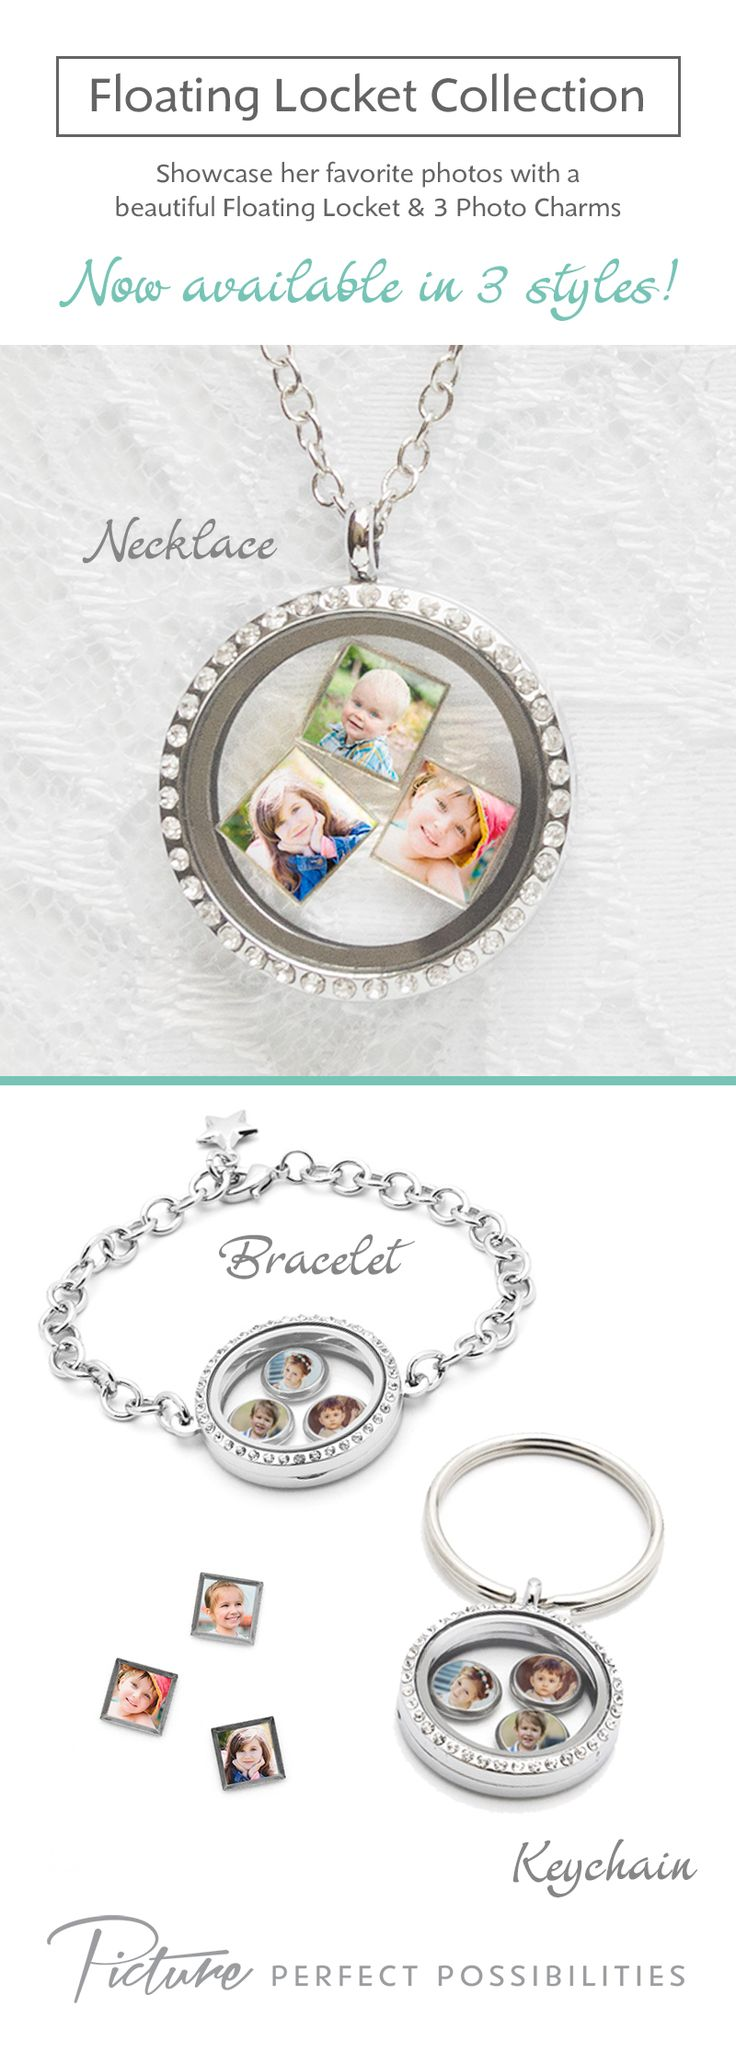 A Floating Locket is the perfect gift for her. Get mom, grandma, wife (or any lady in your life) a personalized gift - she won't be expecting such a cute gift!